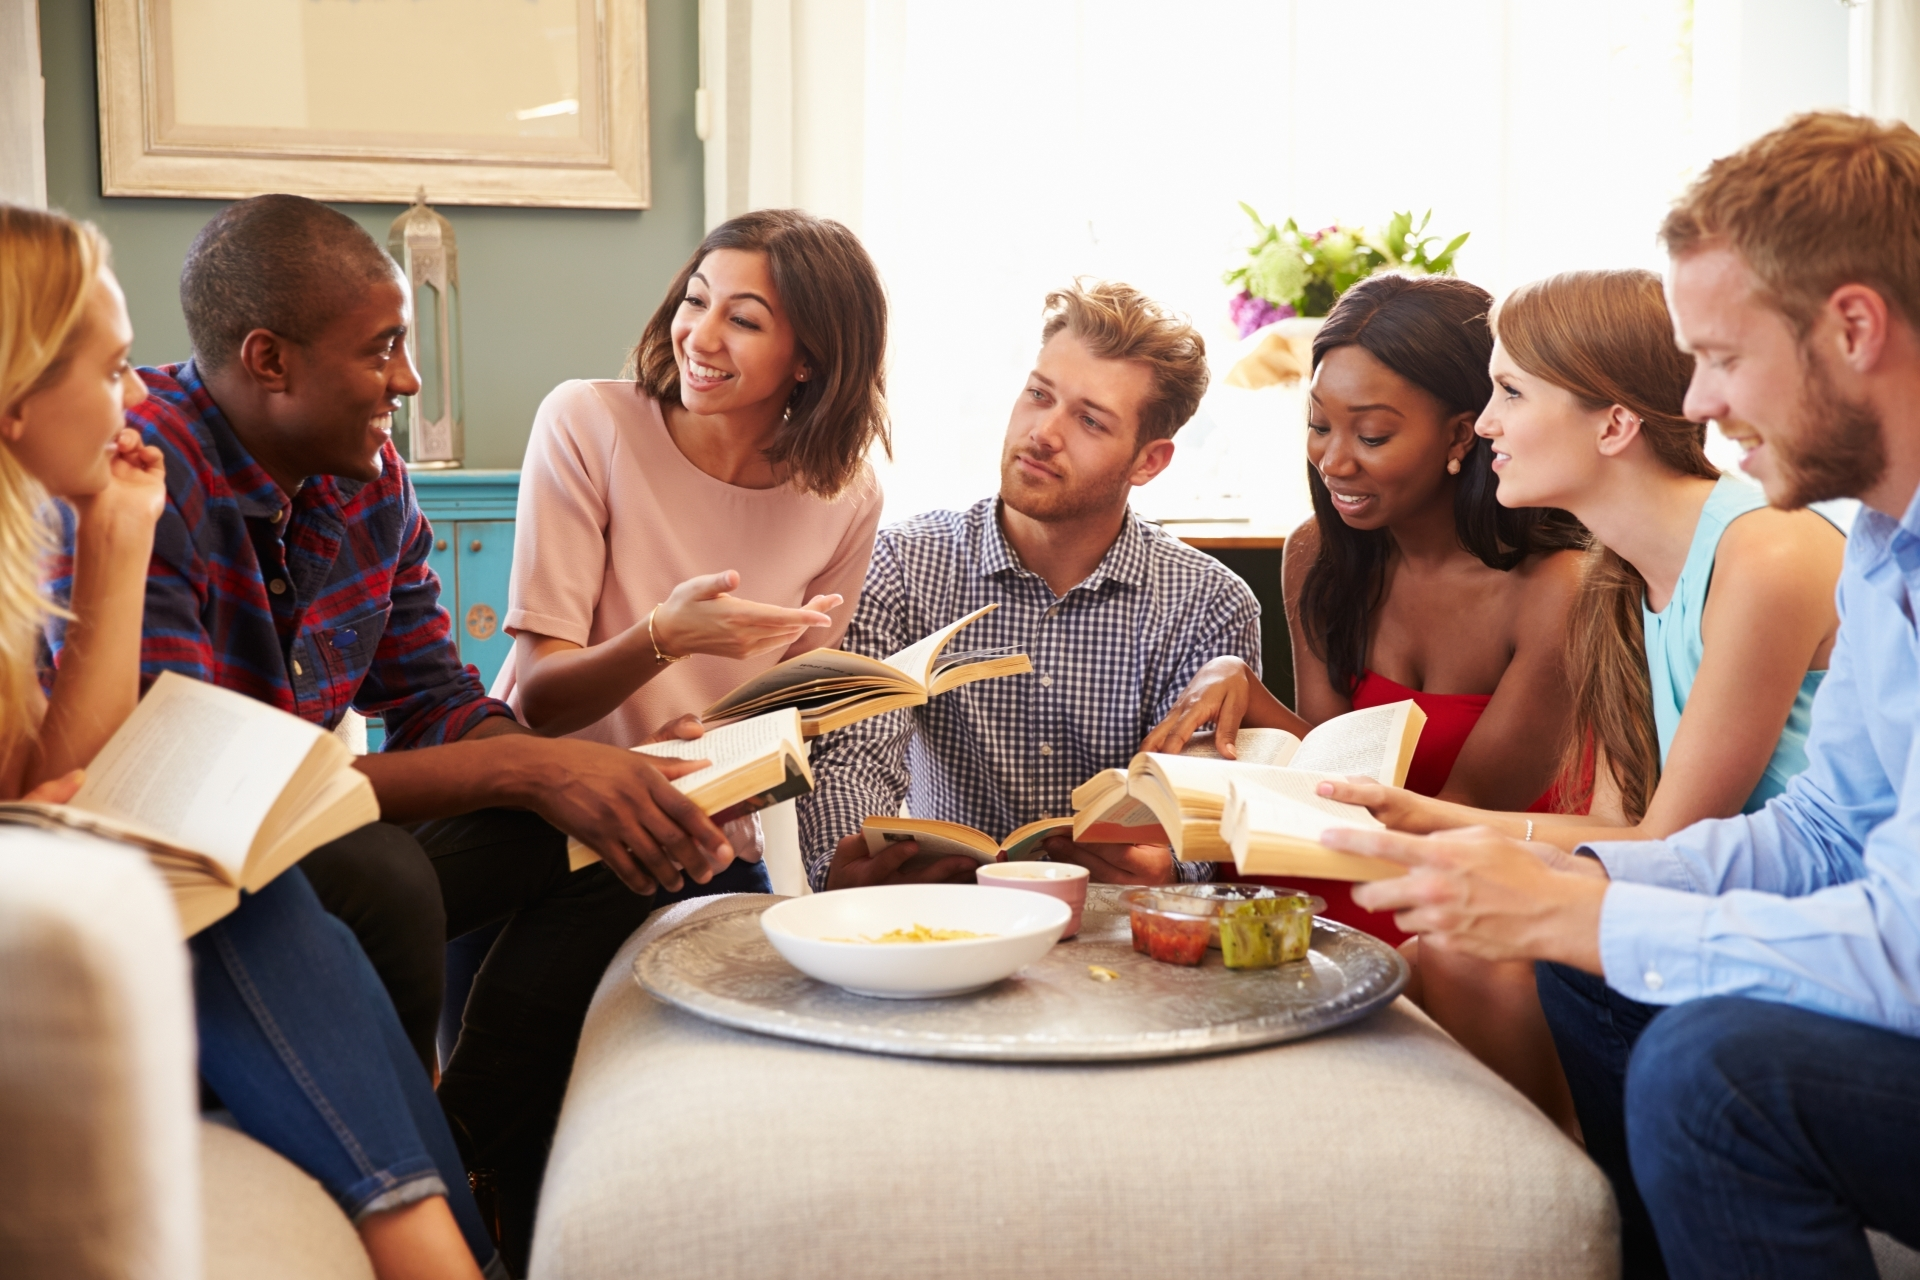 Happy National Reading Group Day - Find Your Next Book Club Read